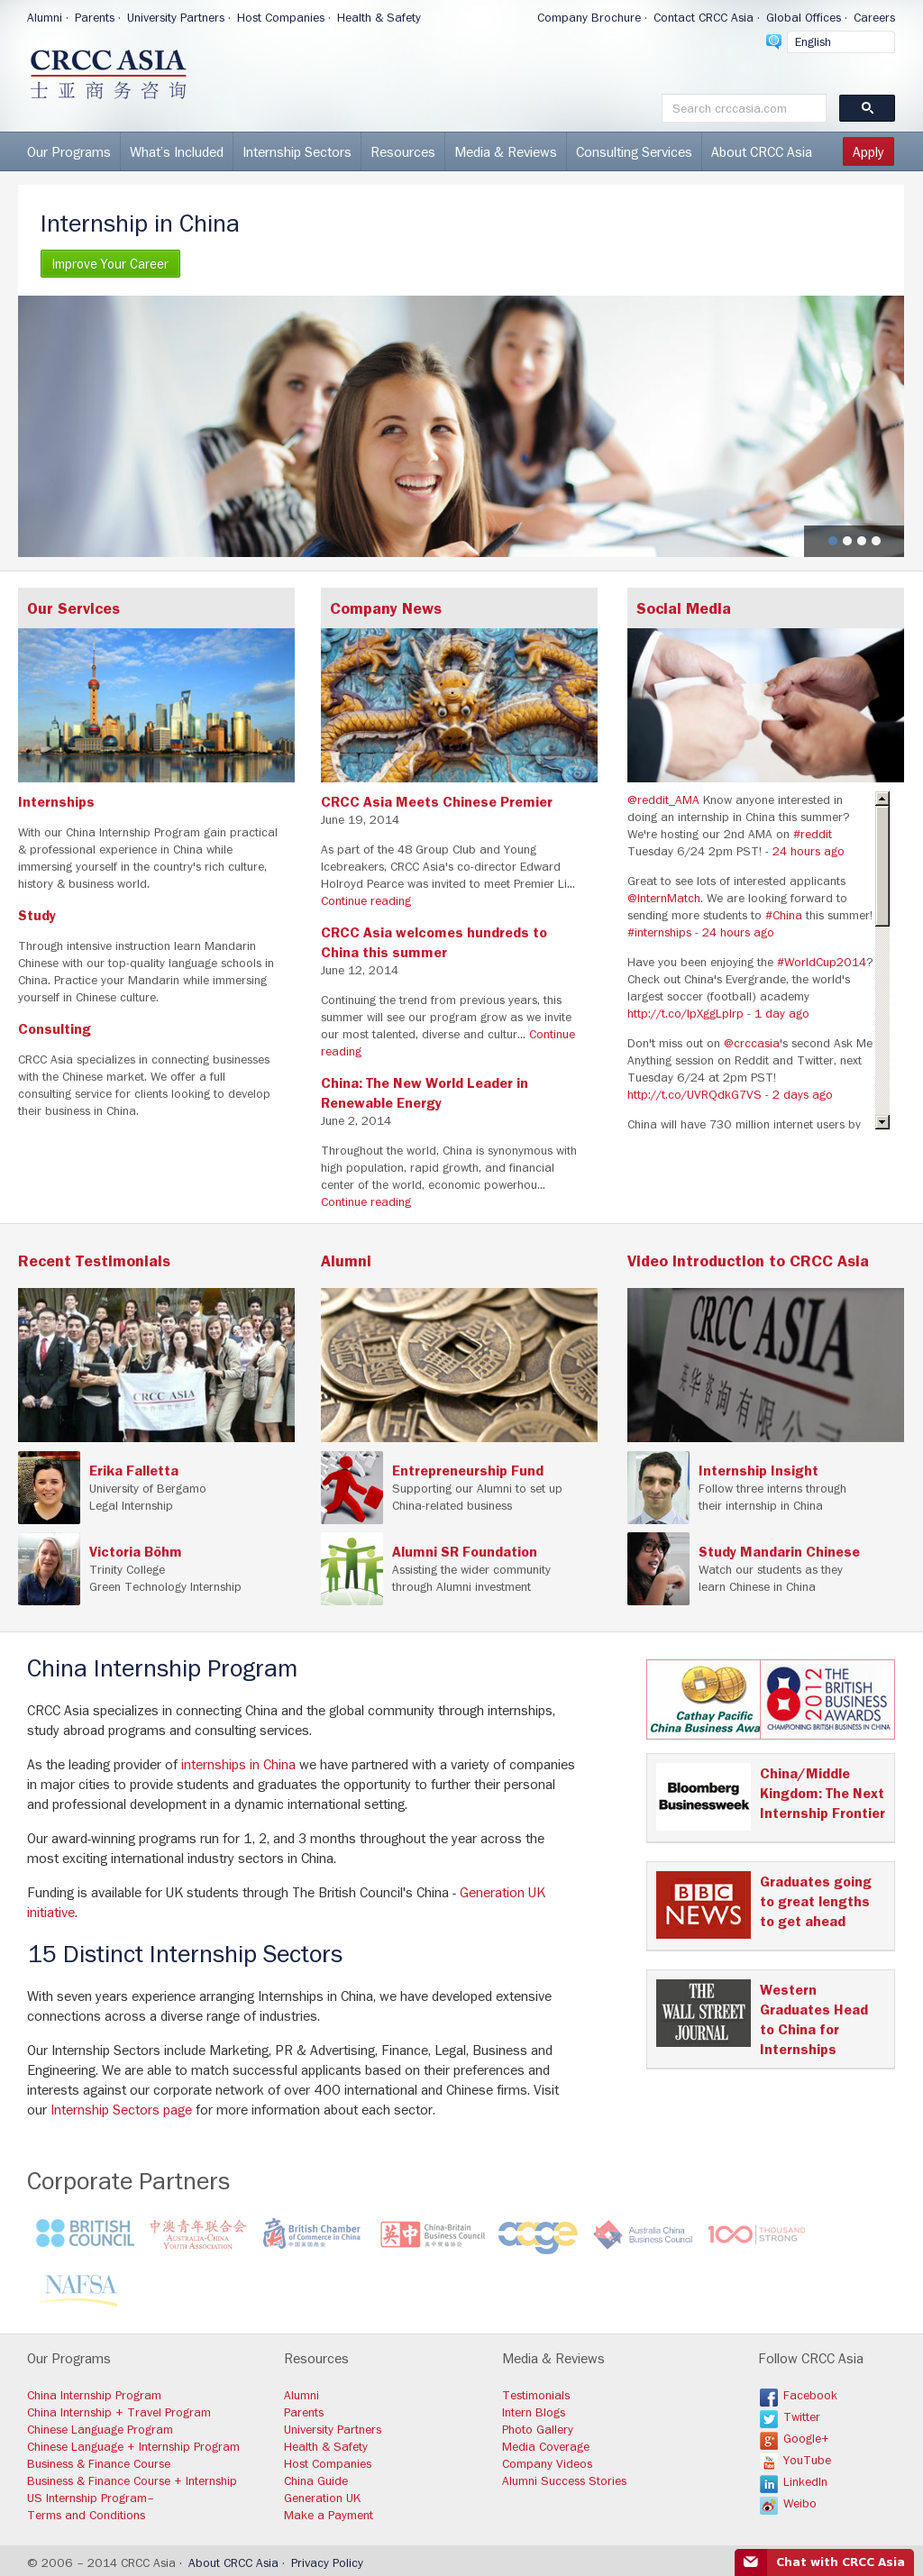 CRCC Asia Competitors, Revenue and Employees - Owler Company Profile